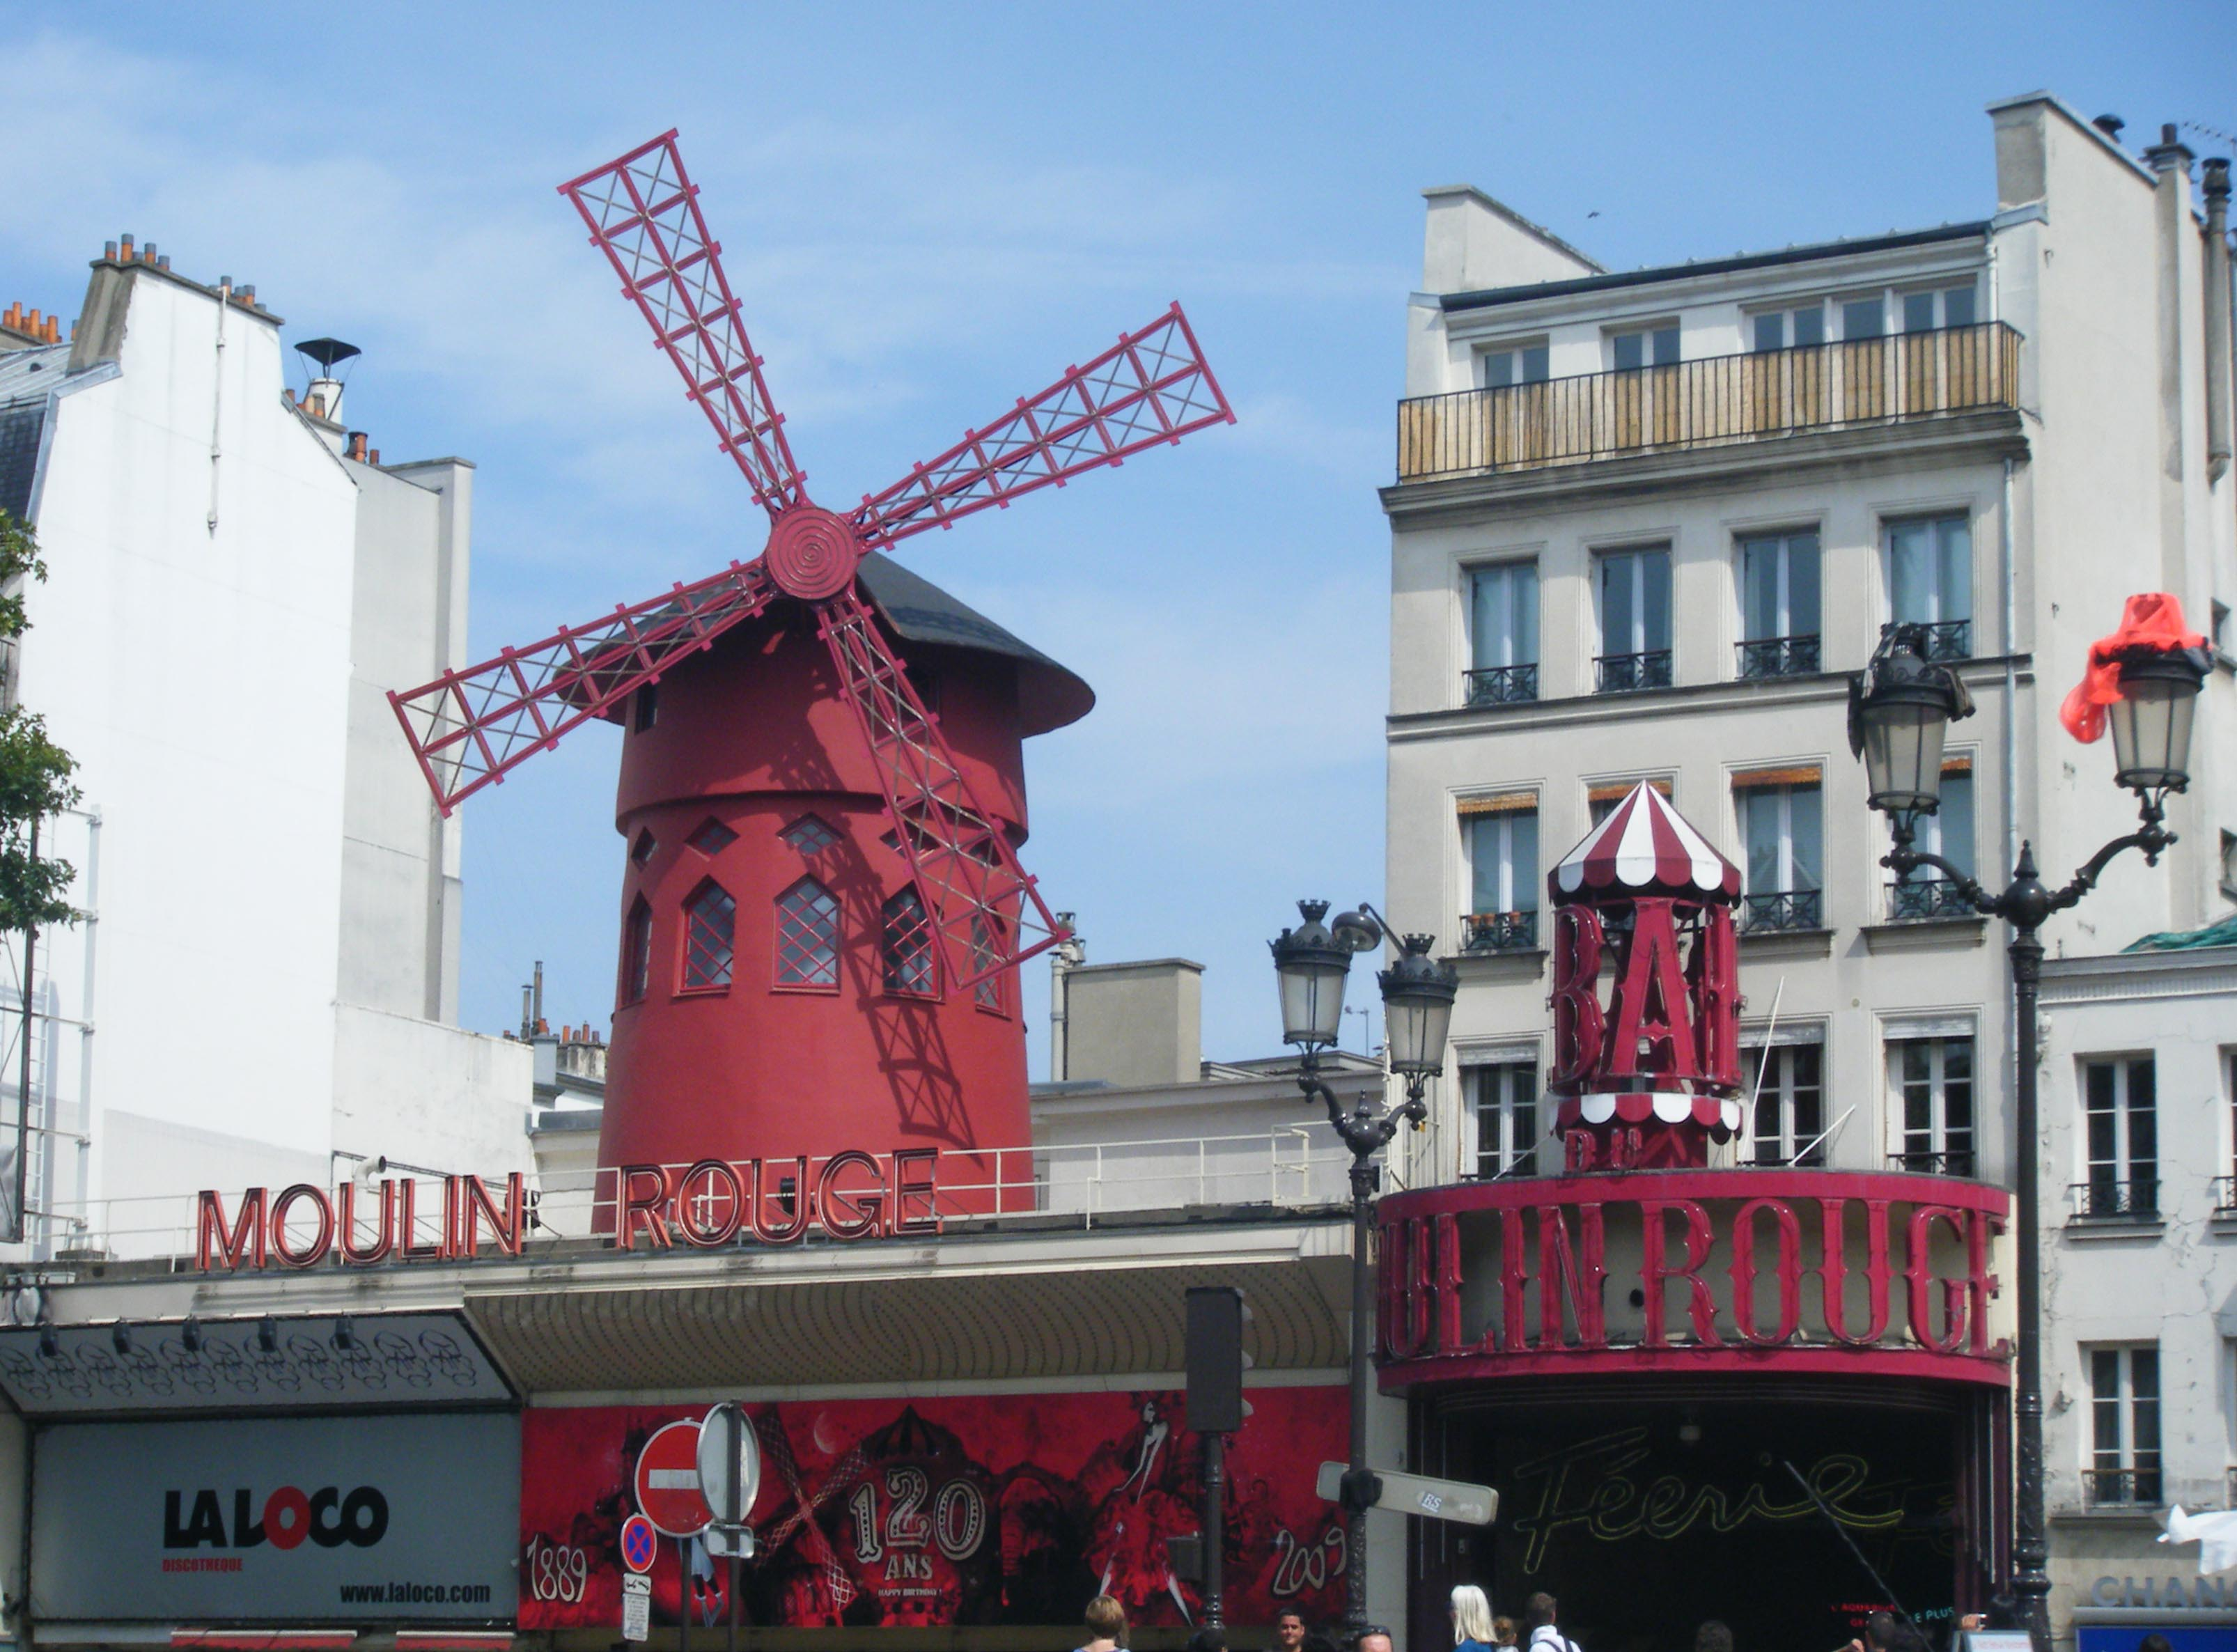 Moulin Rouge Libro Moulin Rouge Wikipedia